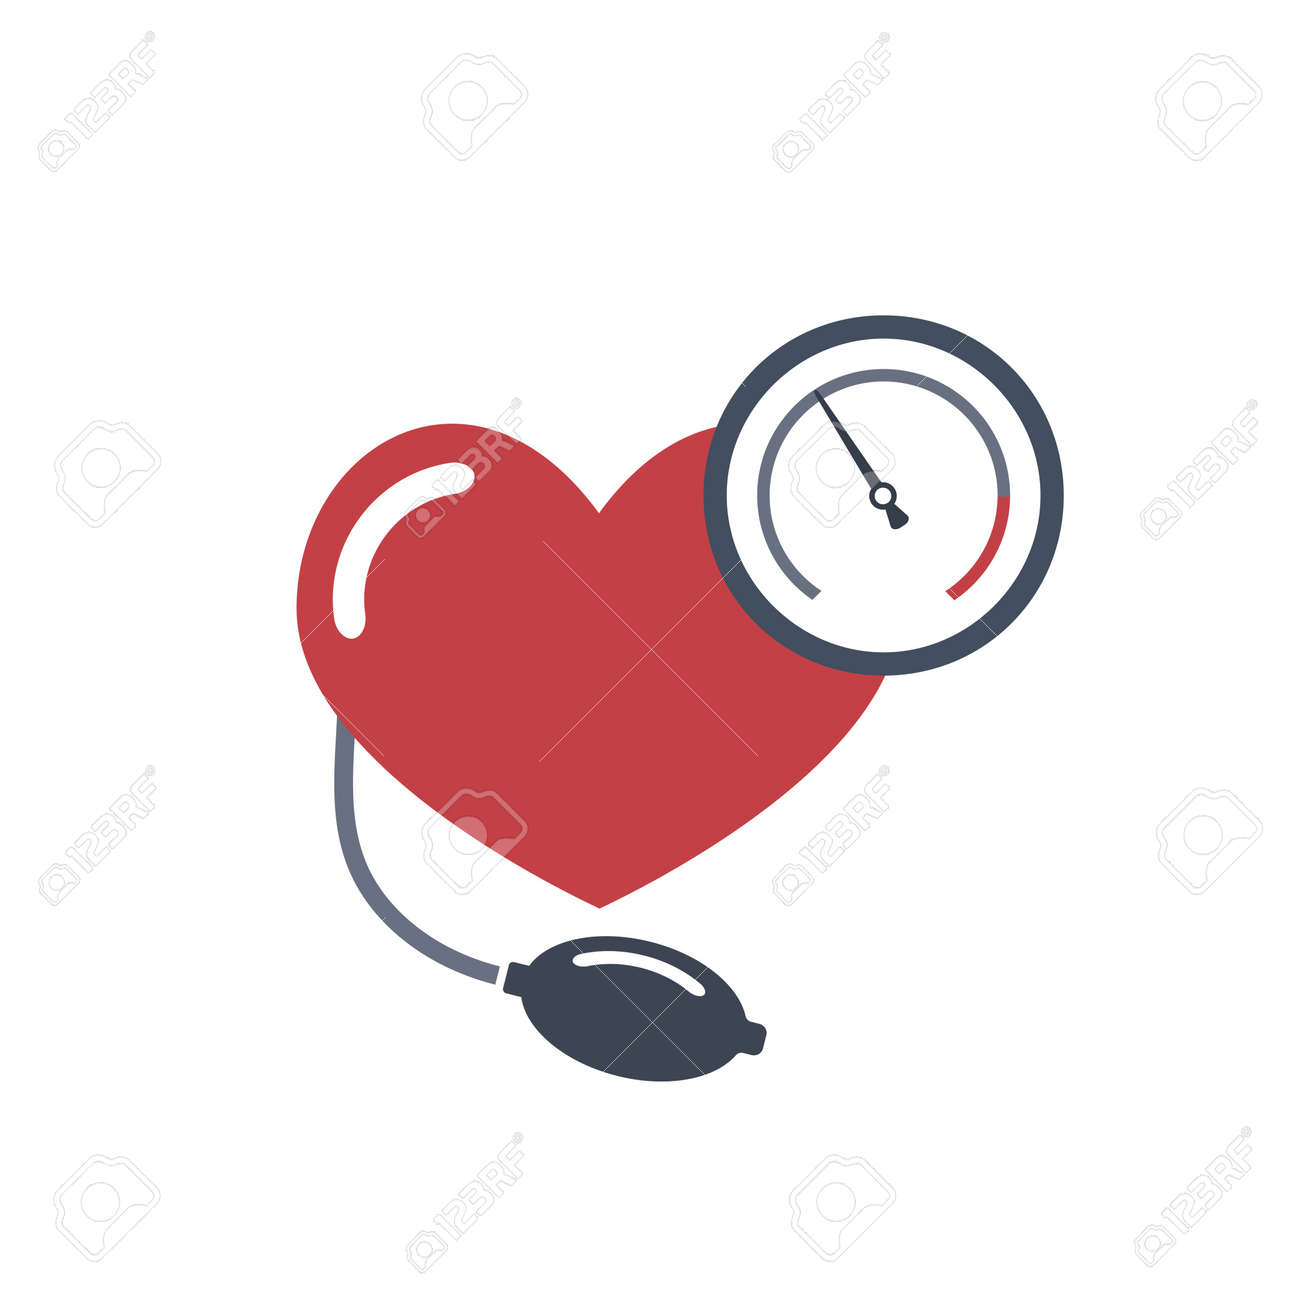 Heart, blood pressure measuring. Vector flat image on white background. - 77264796